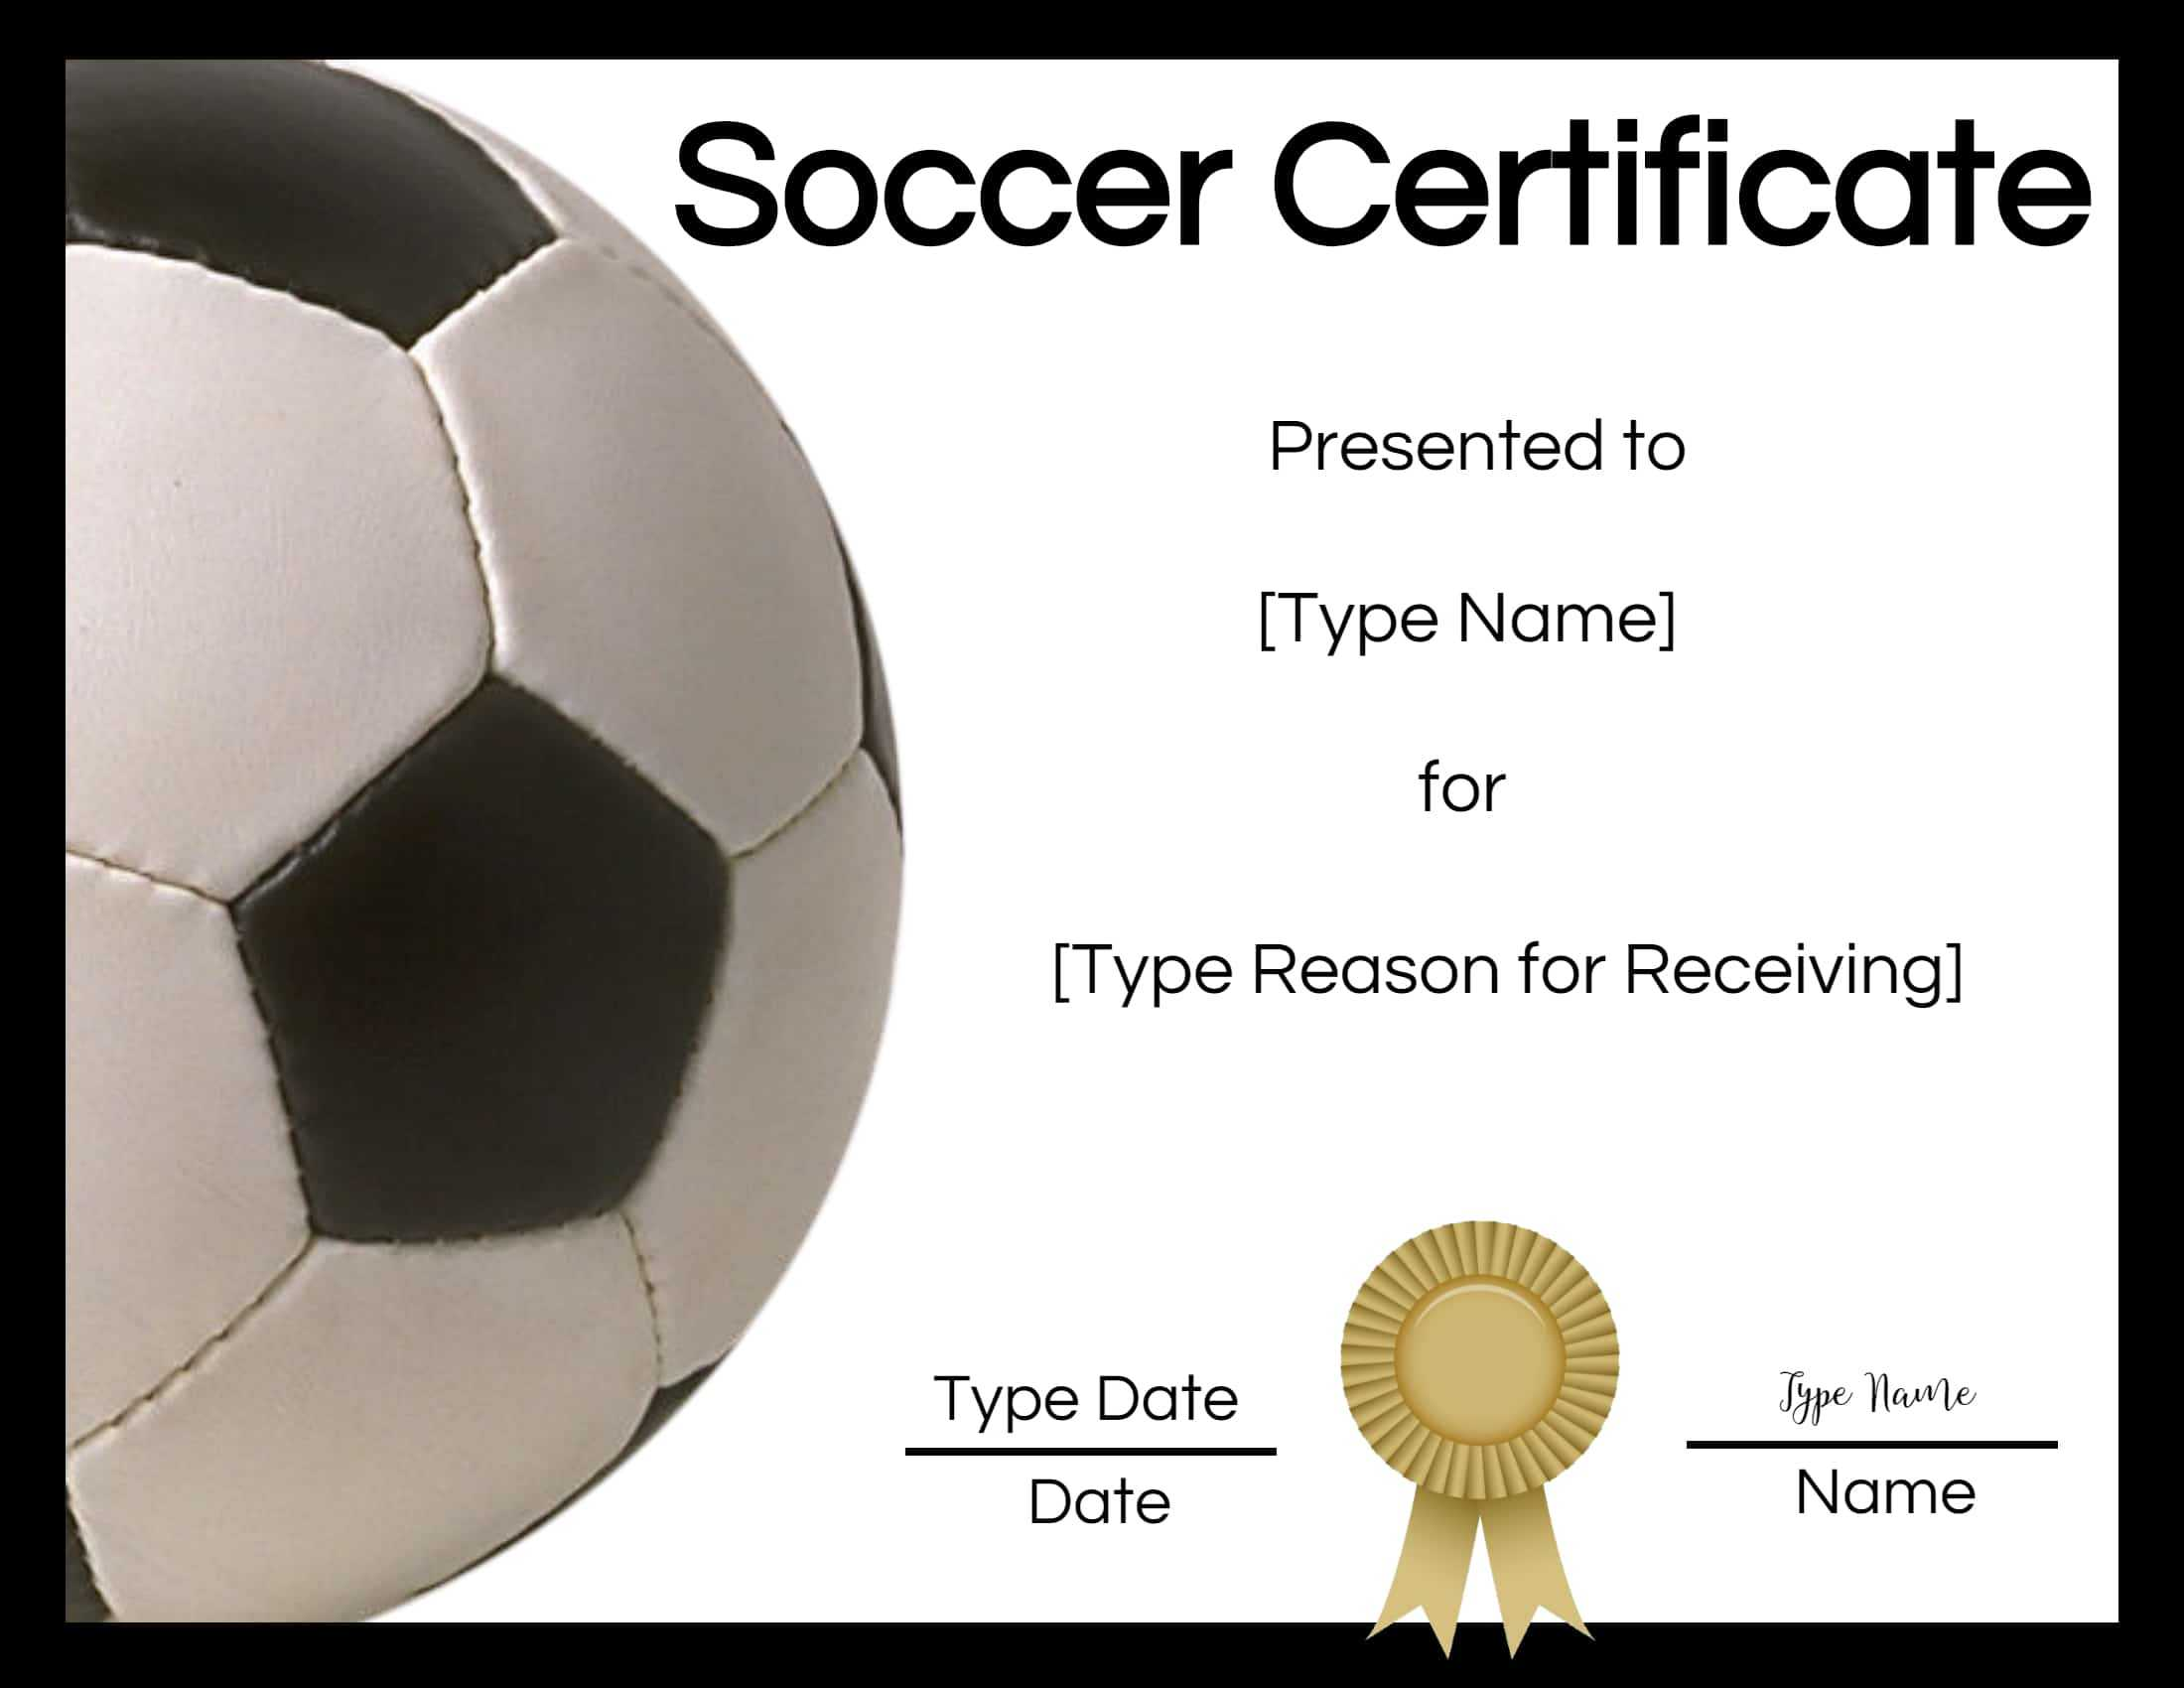 Free Soccer Certificate Maker   Edit Online And Print At Home in Soccer Certificate Templates For Word